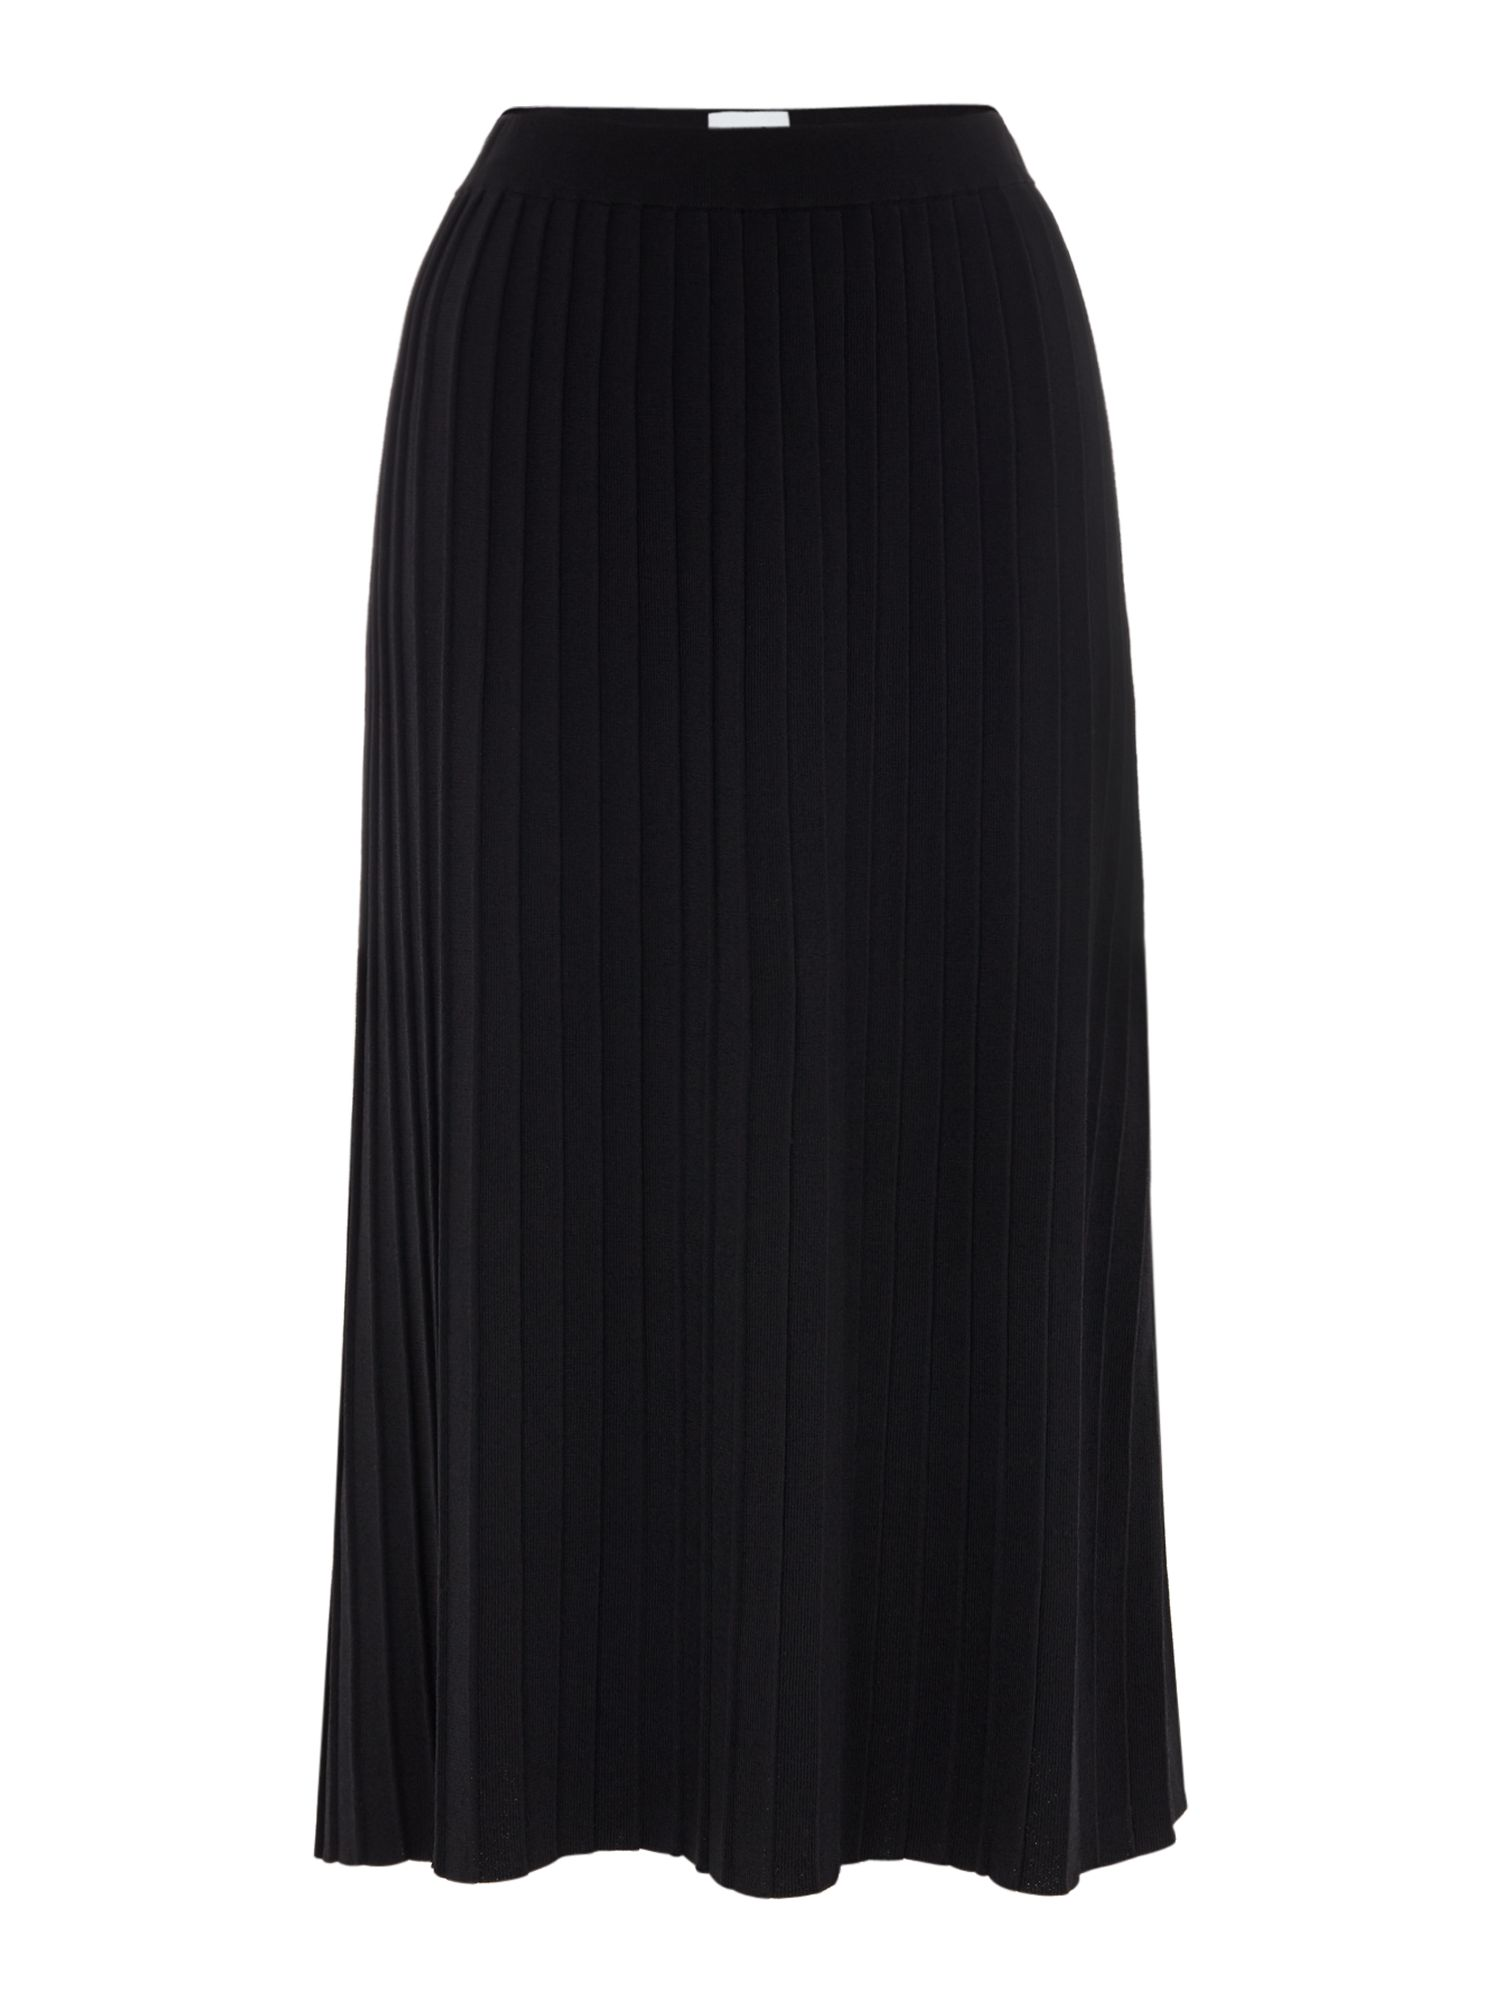 Linea Anna Knitted Pleated Skirt, Black